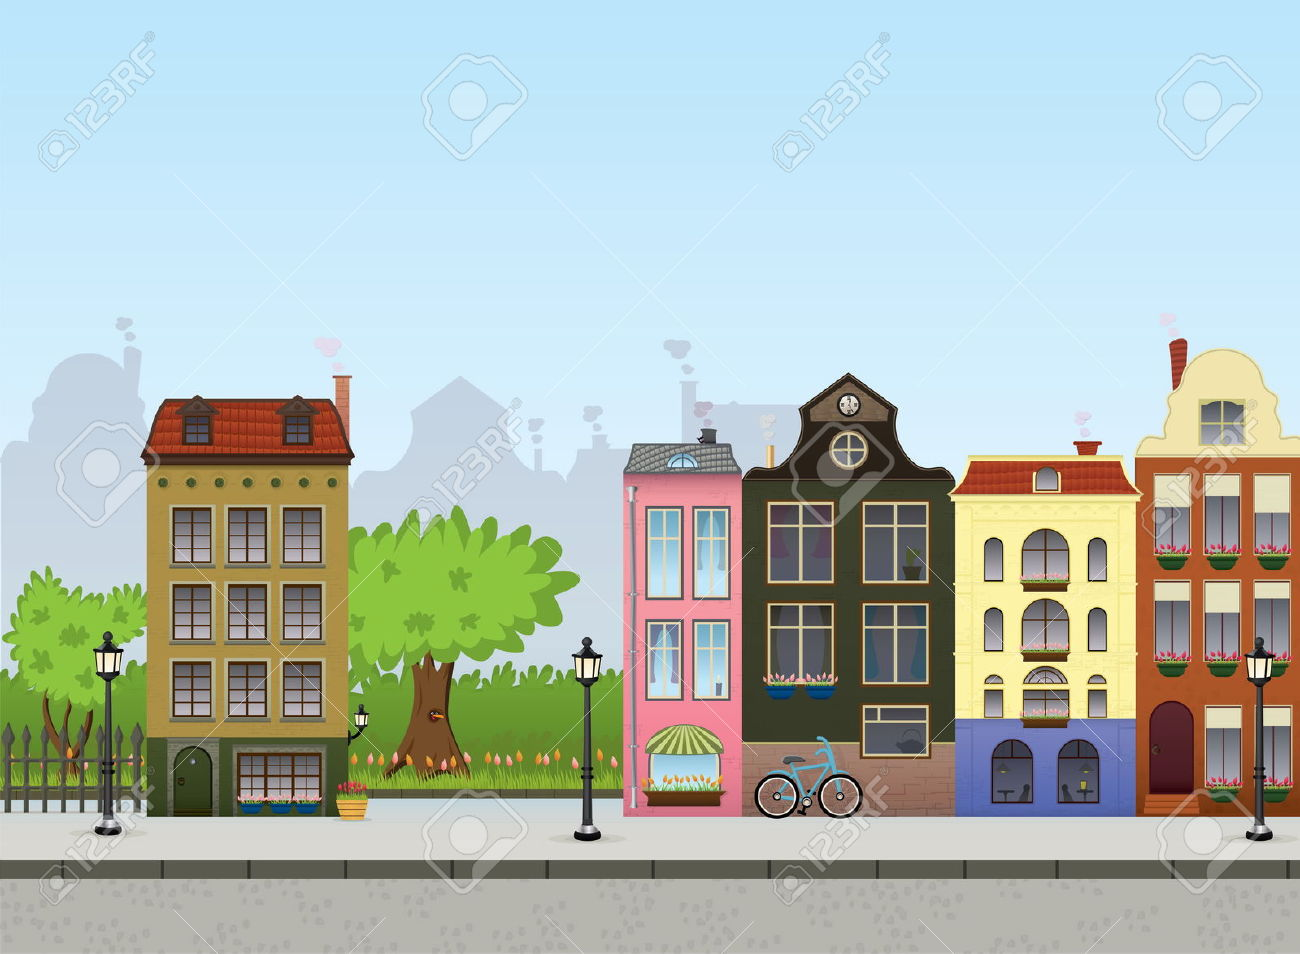 city centre clipart - photo #16